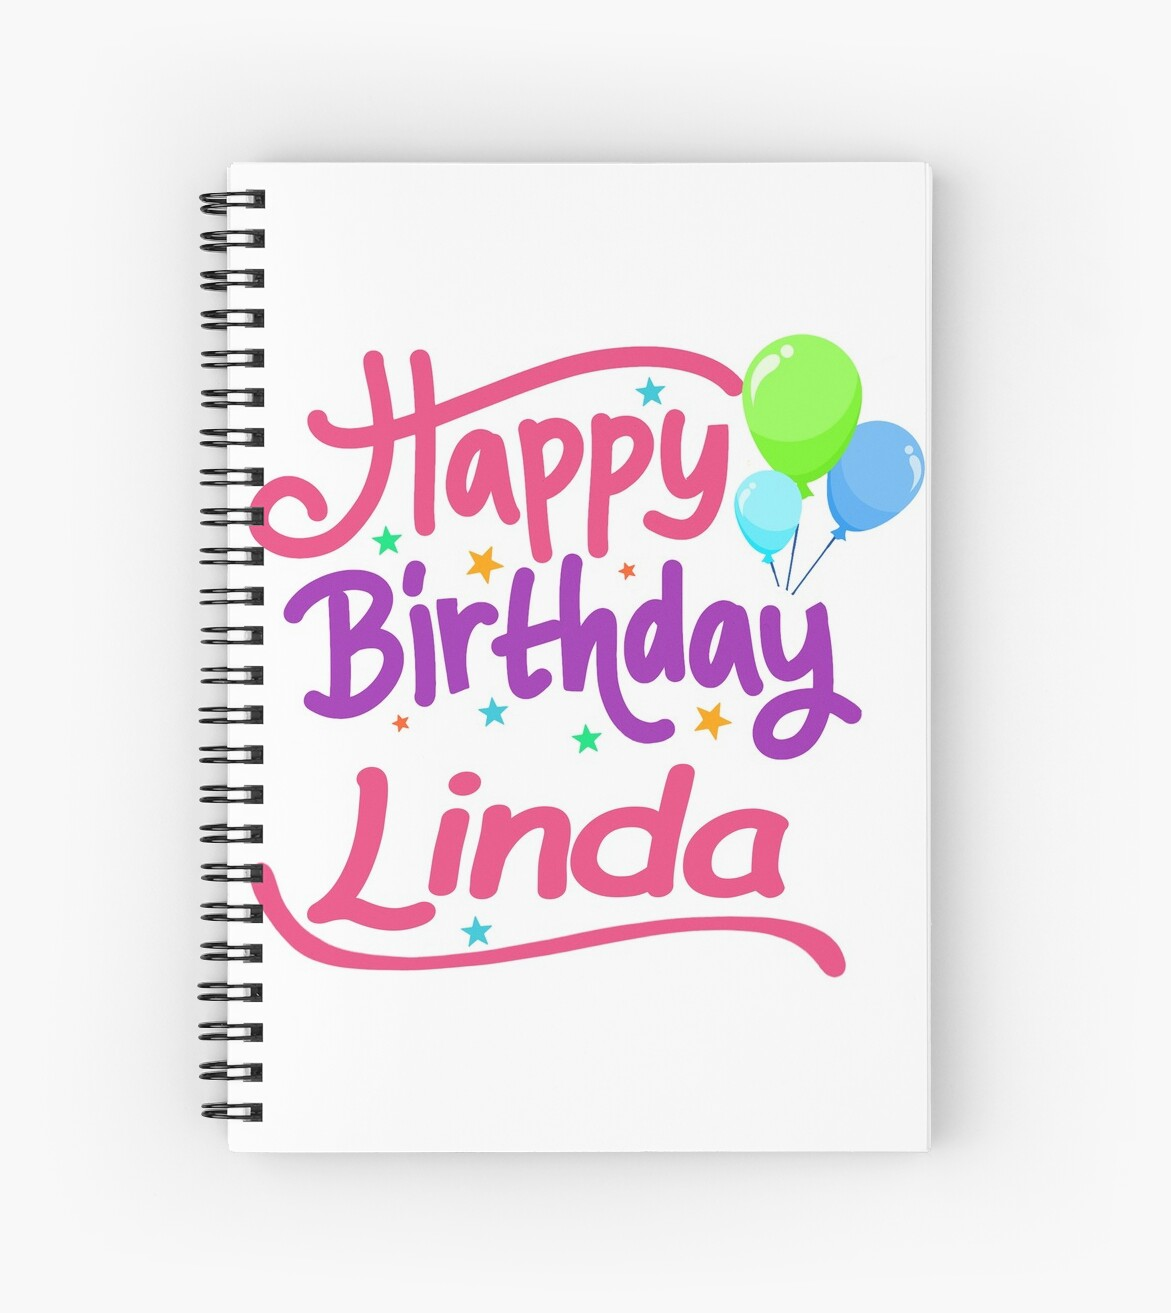 Happy Birthday Linda Spiral Notebooks By Pm Names Redbubble